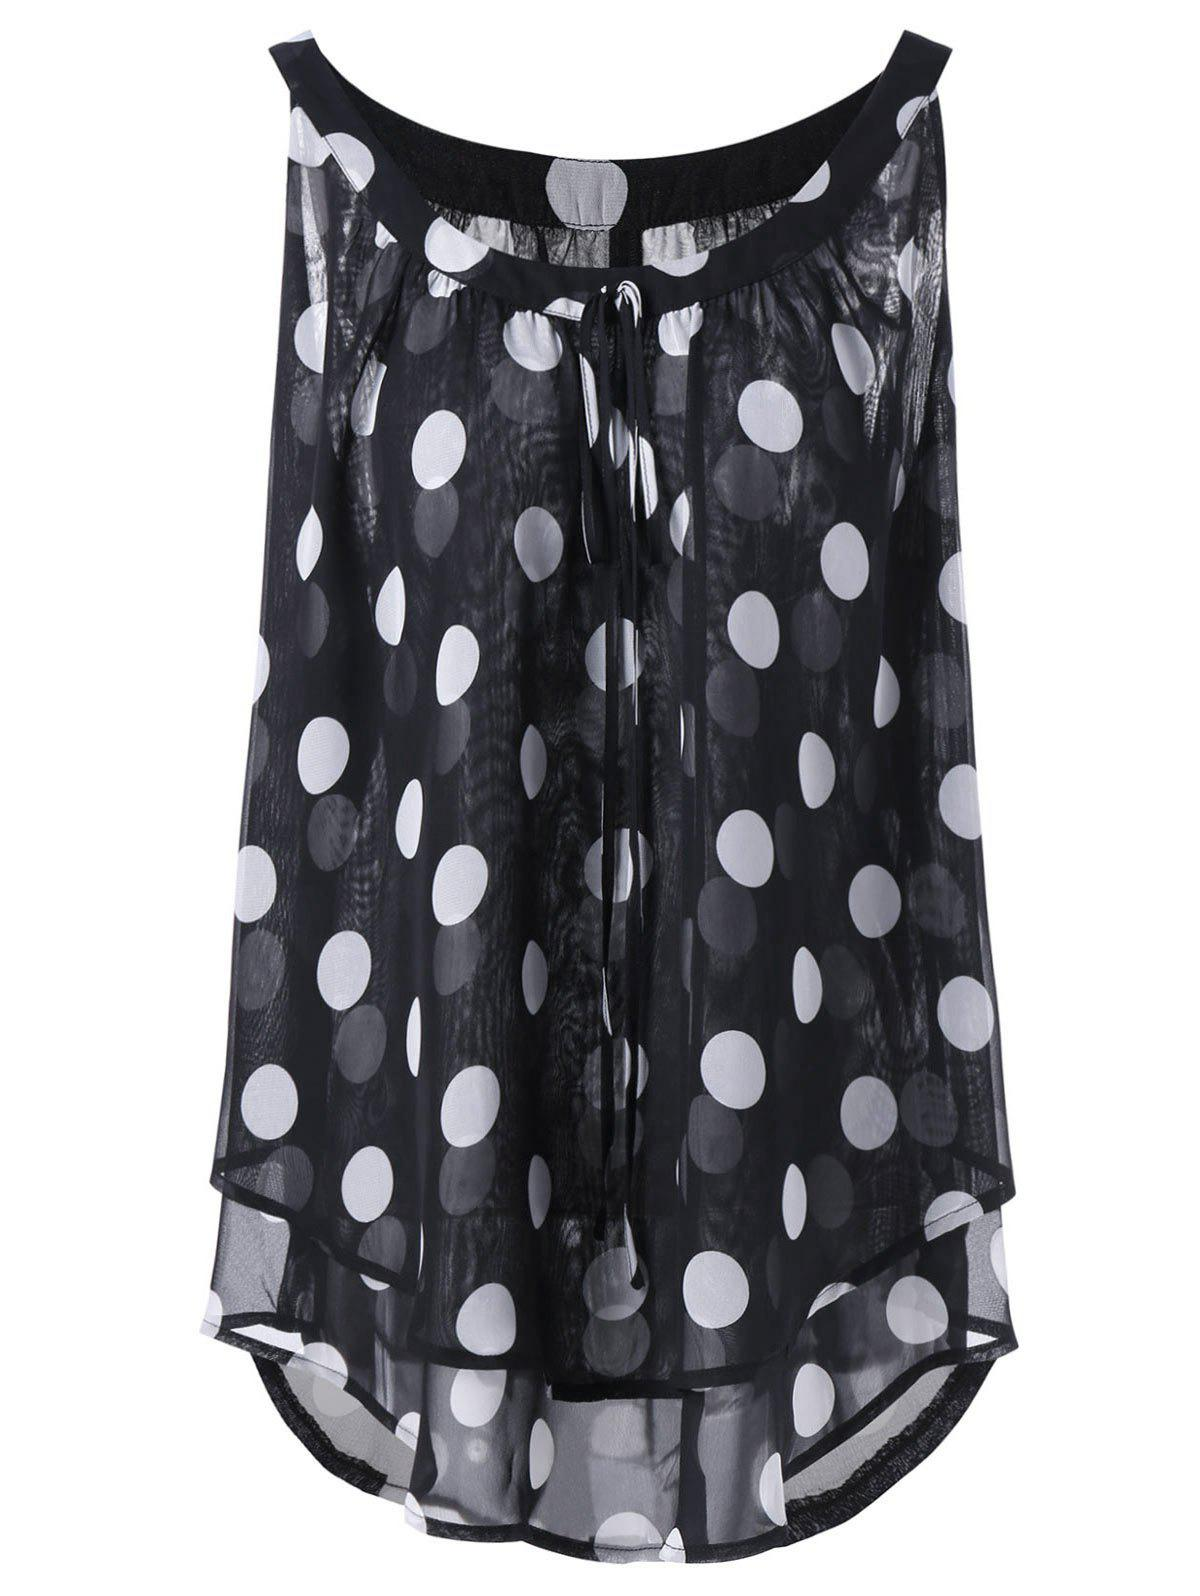 Plus Size Polka Dot Printed  Chiffon Flowy TopWOMEN<br><br>Size: 4XL; Color: BLACK; Material: Cotton Blends,Polyester; Fabric Type: Chiffon; Shirt Length: Long; Sleeve Length: Sleeveless; Collar: Round Neck; Style: Fashion; Season: Spring,Summer; Pattern Type: Polka Dot; Weight: 0.1800kg; Package Contents: 1 x Top;